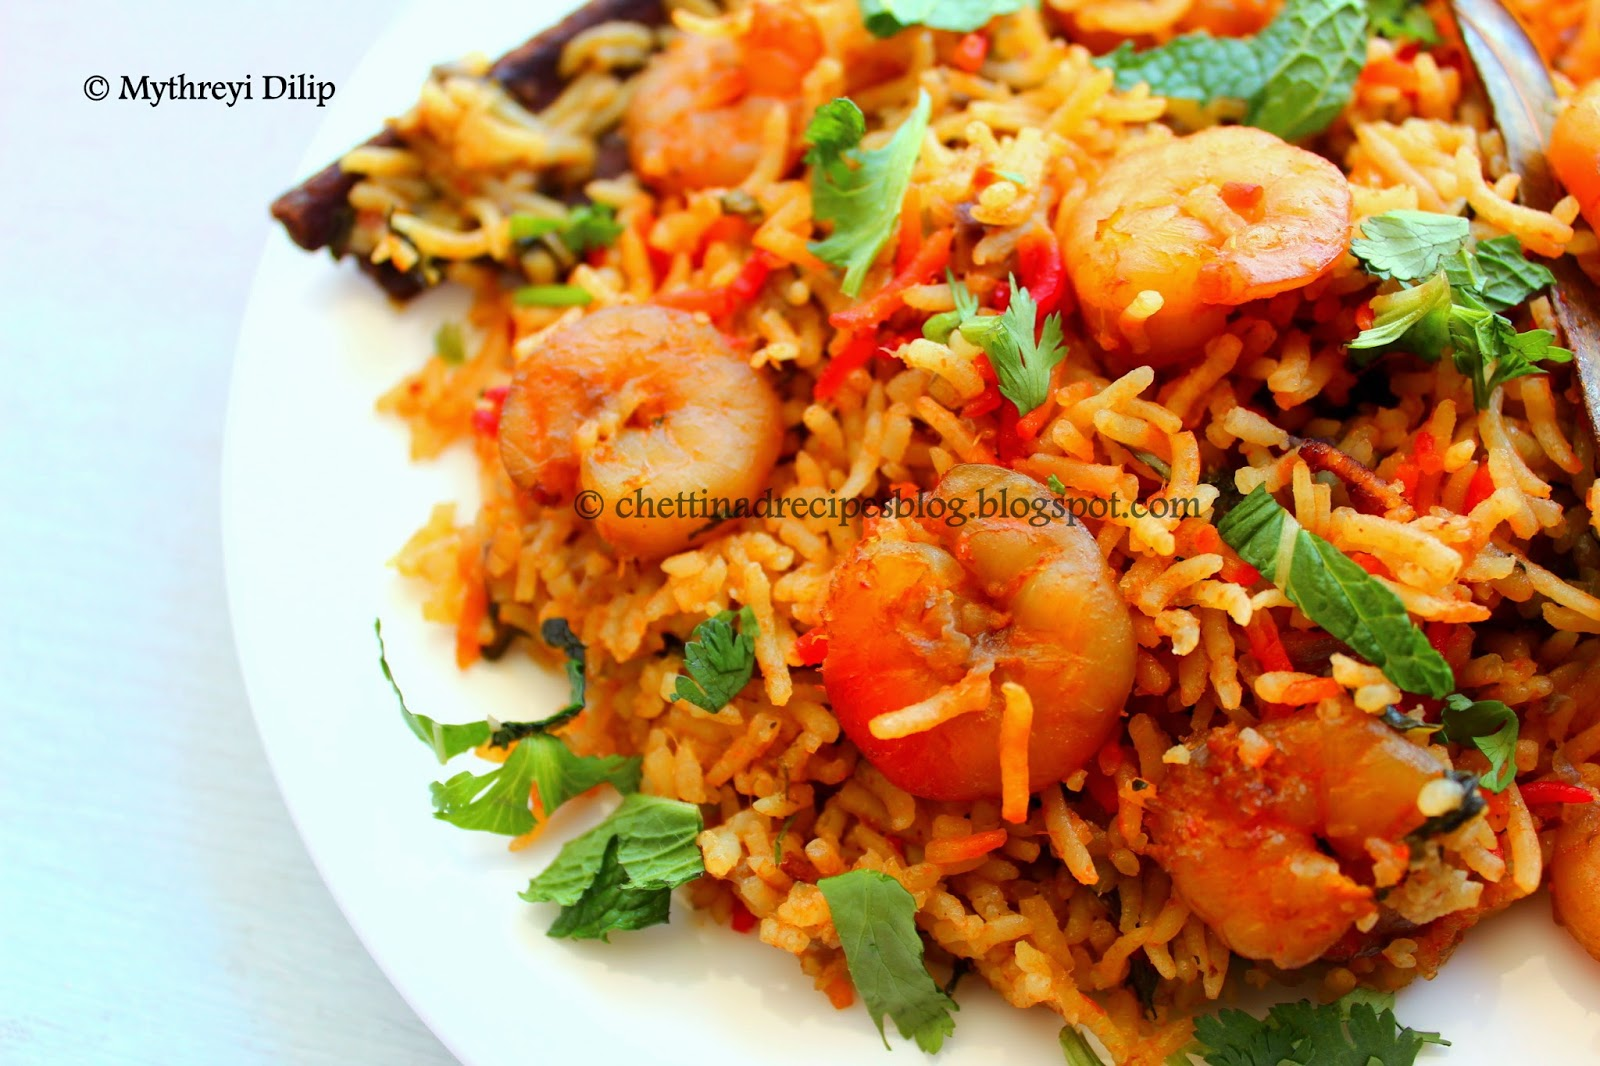 Prawn Biryani - Chettinad Recipes